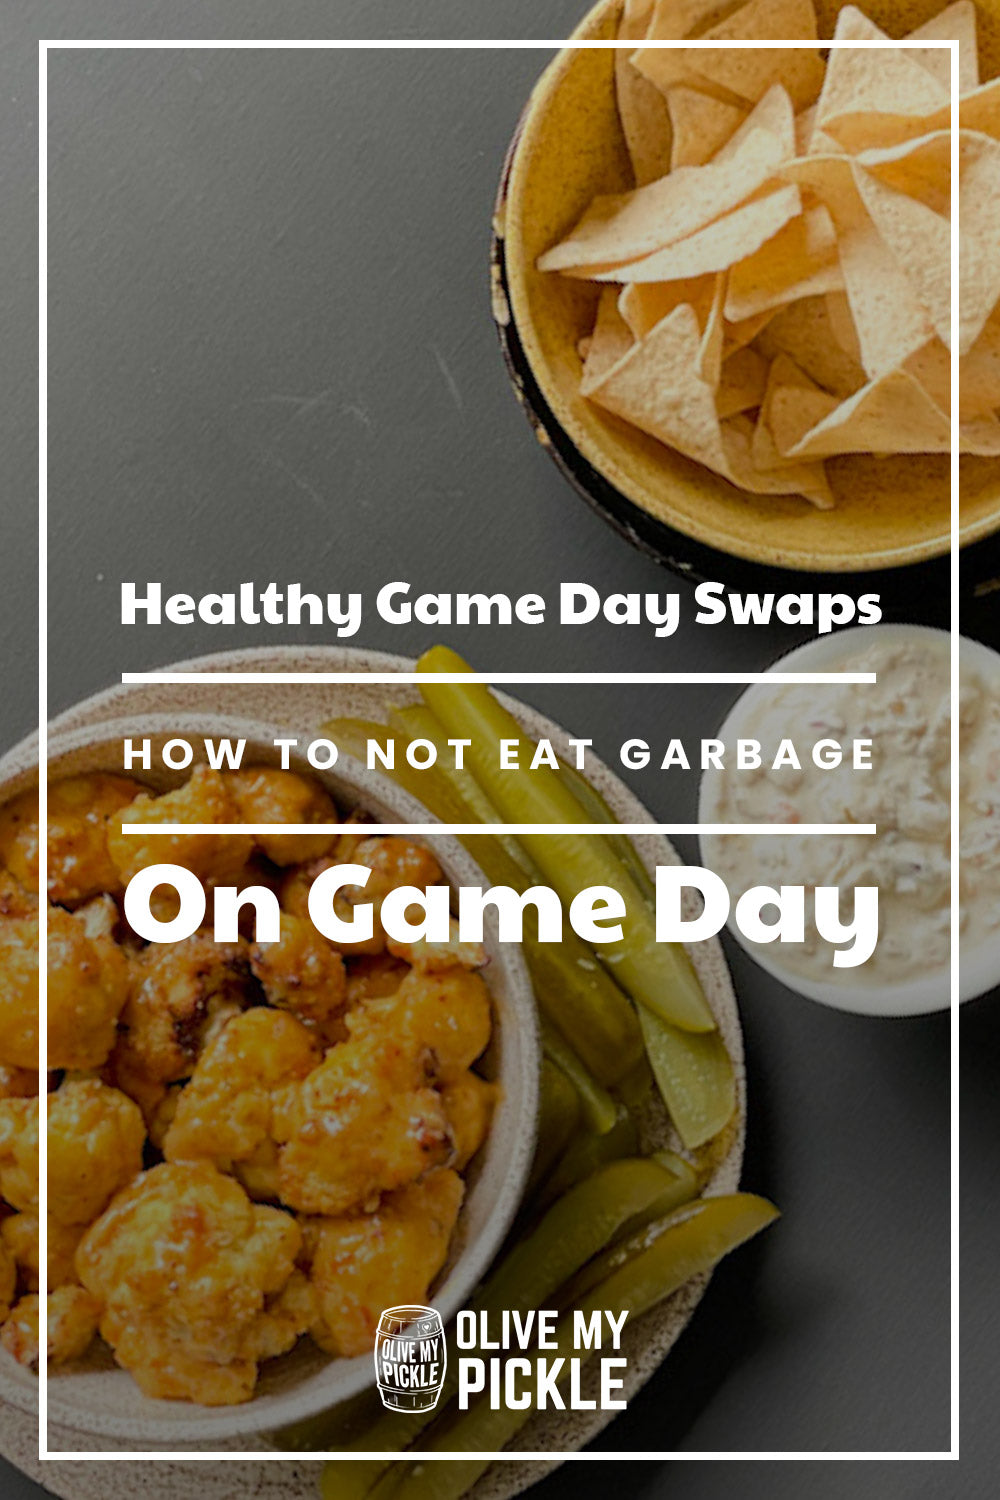 Healthy Game Day Swaps